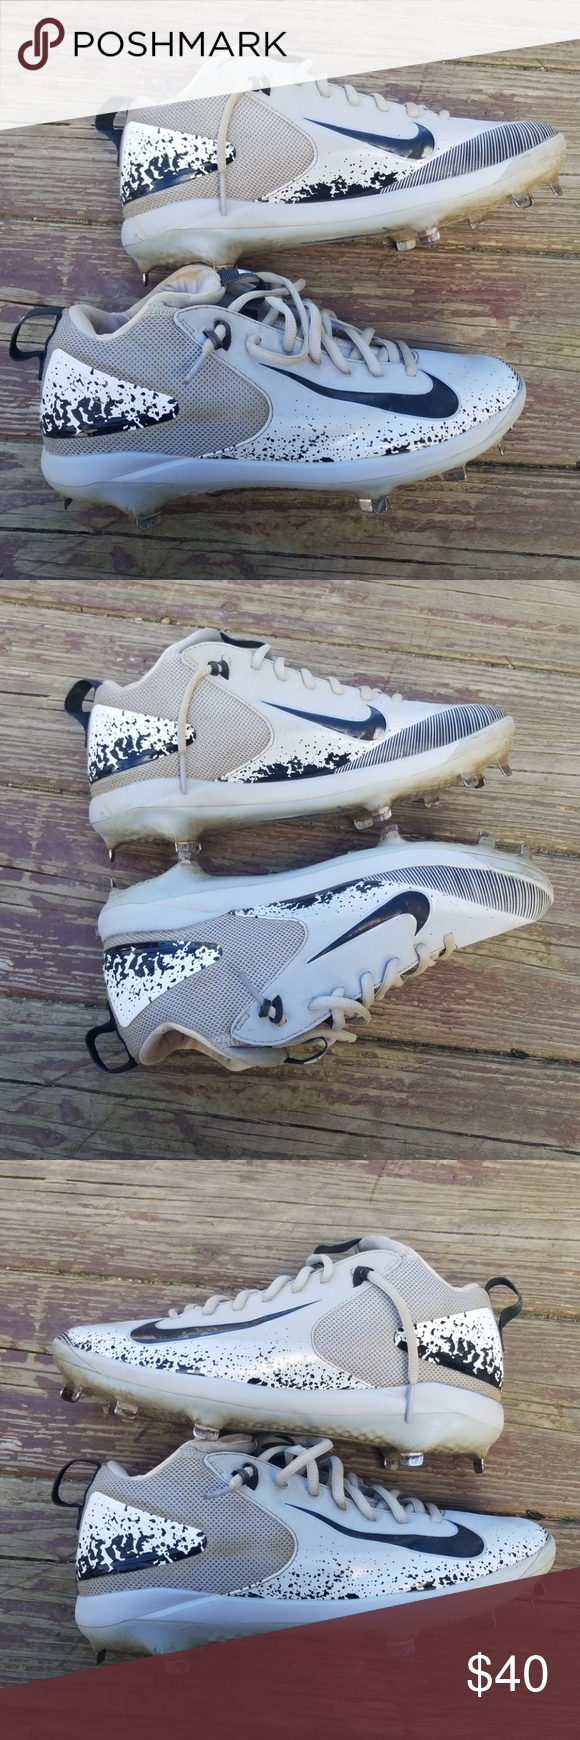 Mike Trout⚾️Baseball Cleats⚾️Size 8 Nice pair of